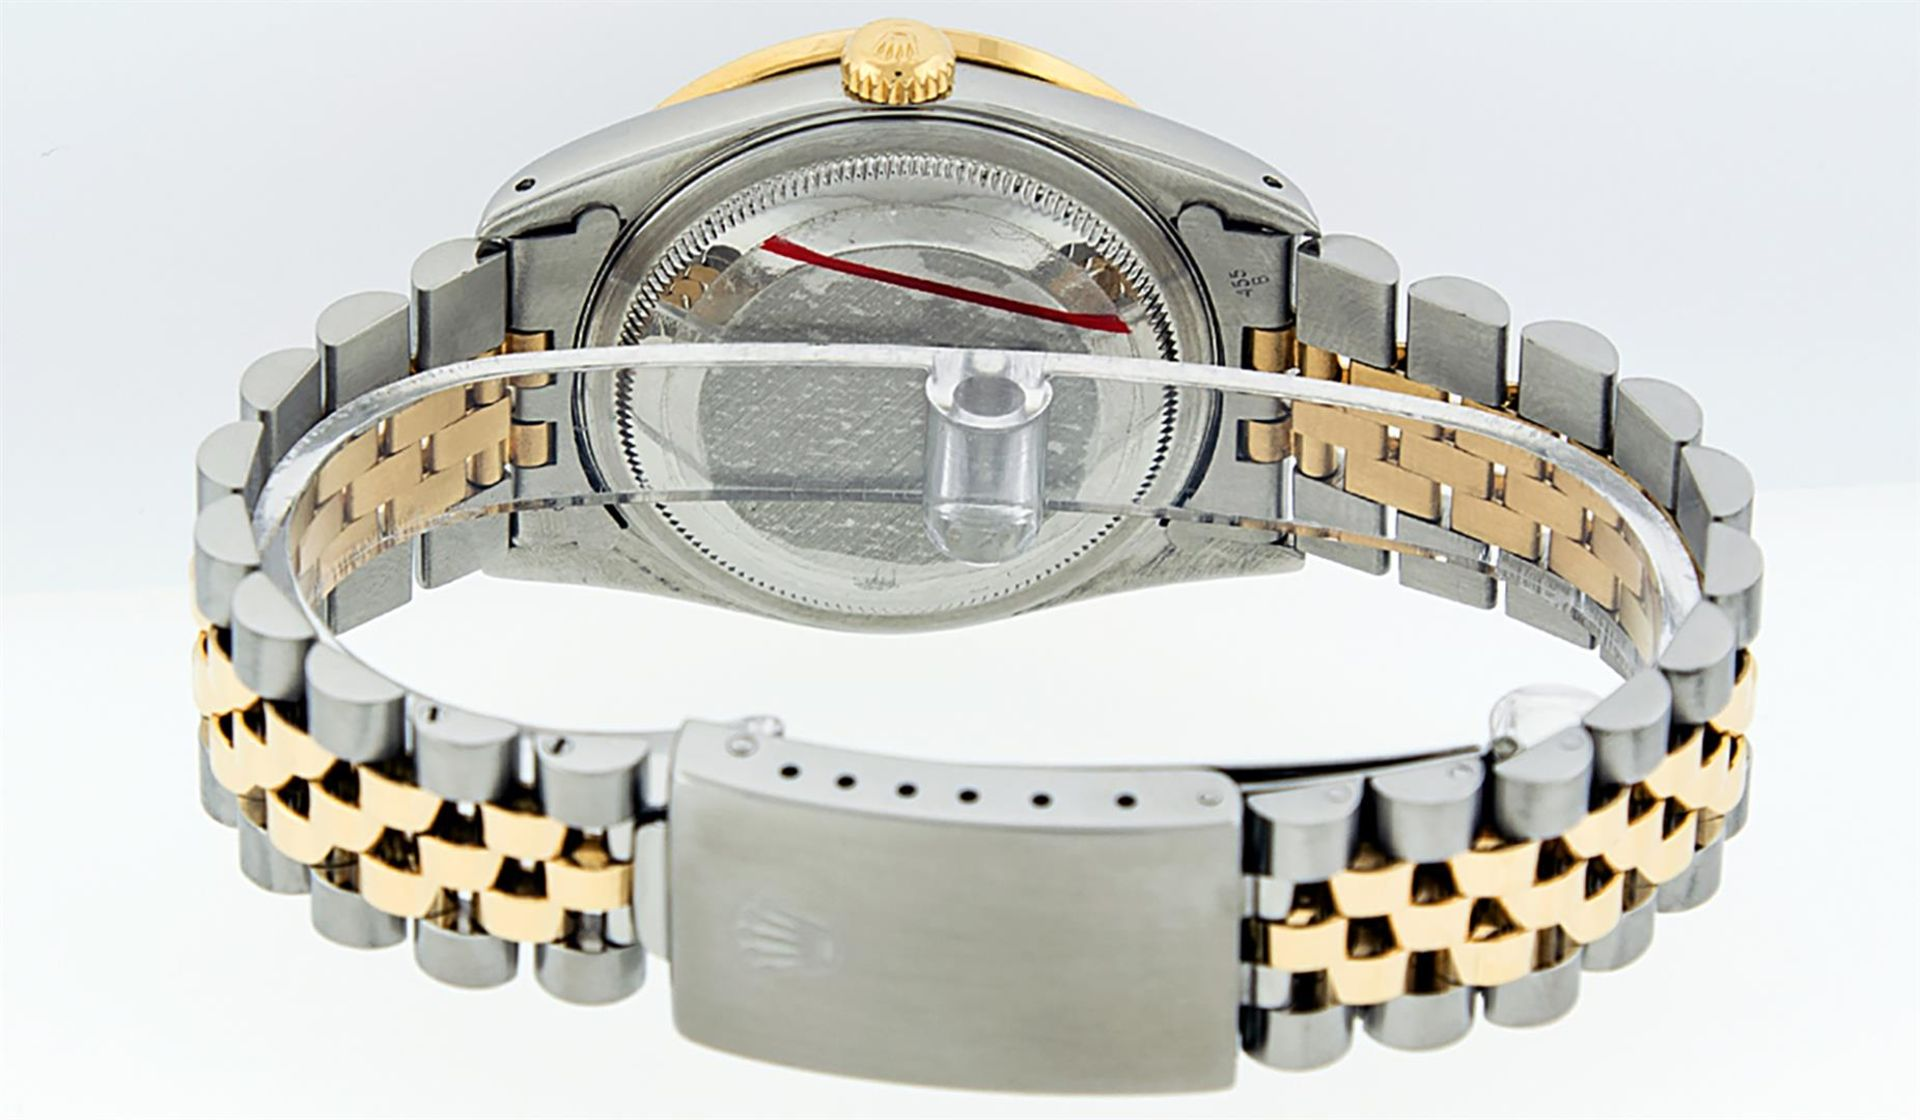 Rolex Mens 2 Tone Lugs Red Vignette Diamond String & Ruby Datejust Wristwatch - Image 6 of 9